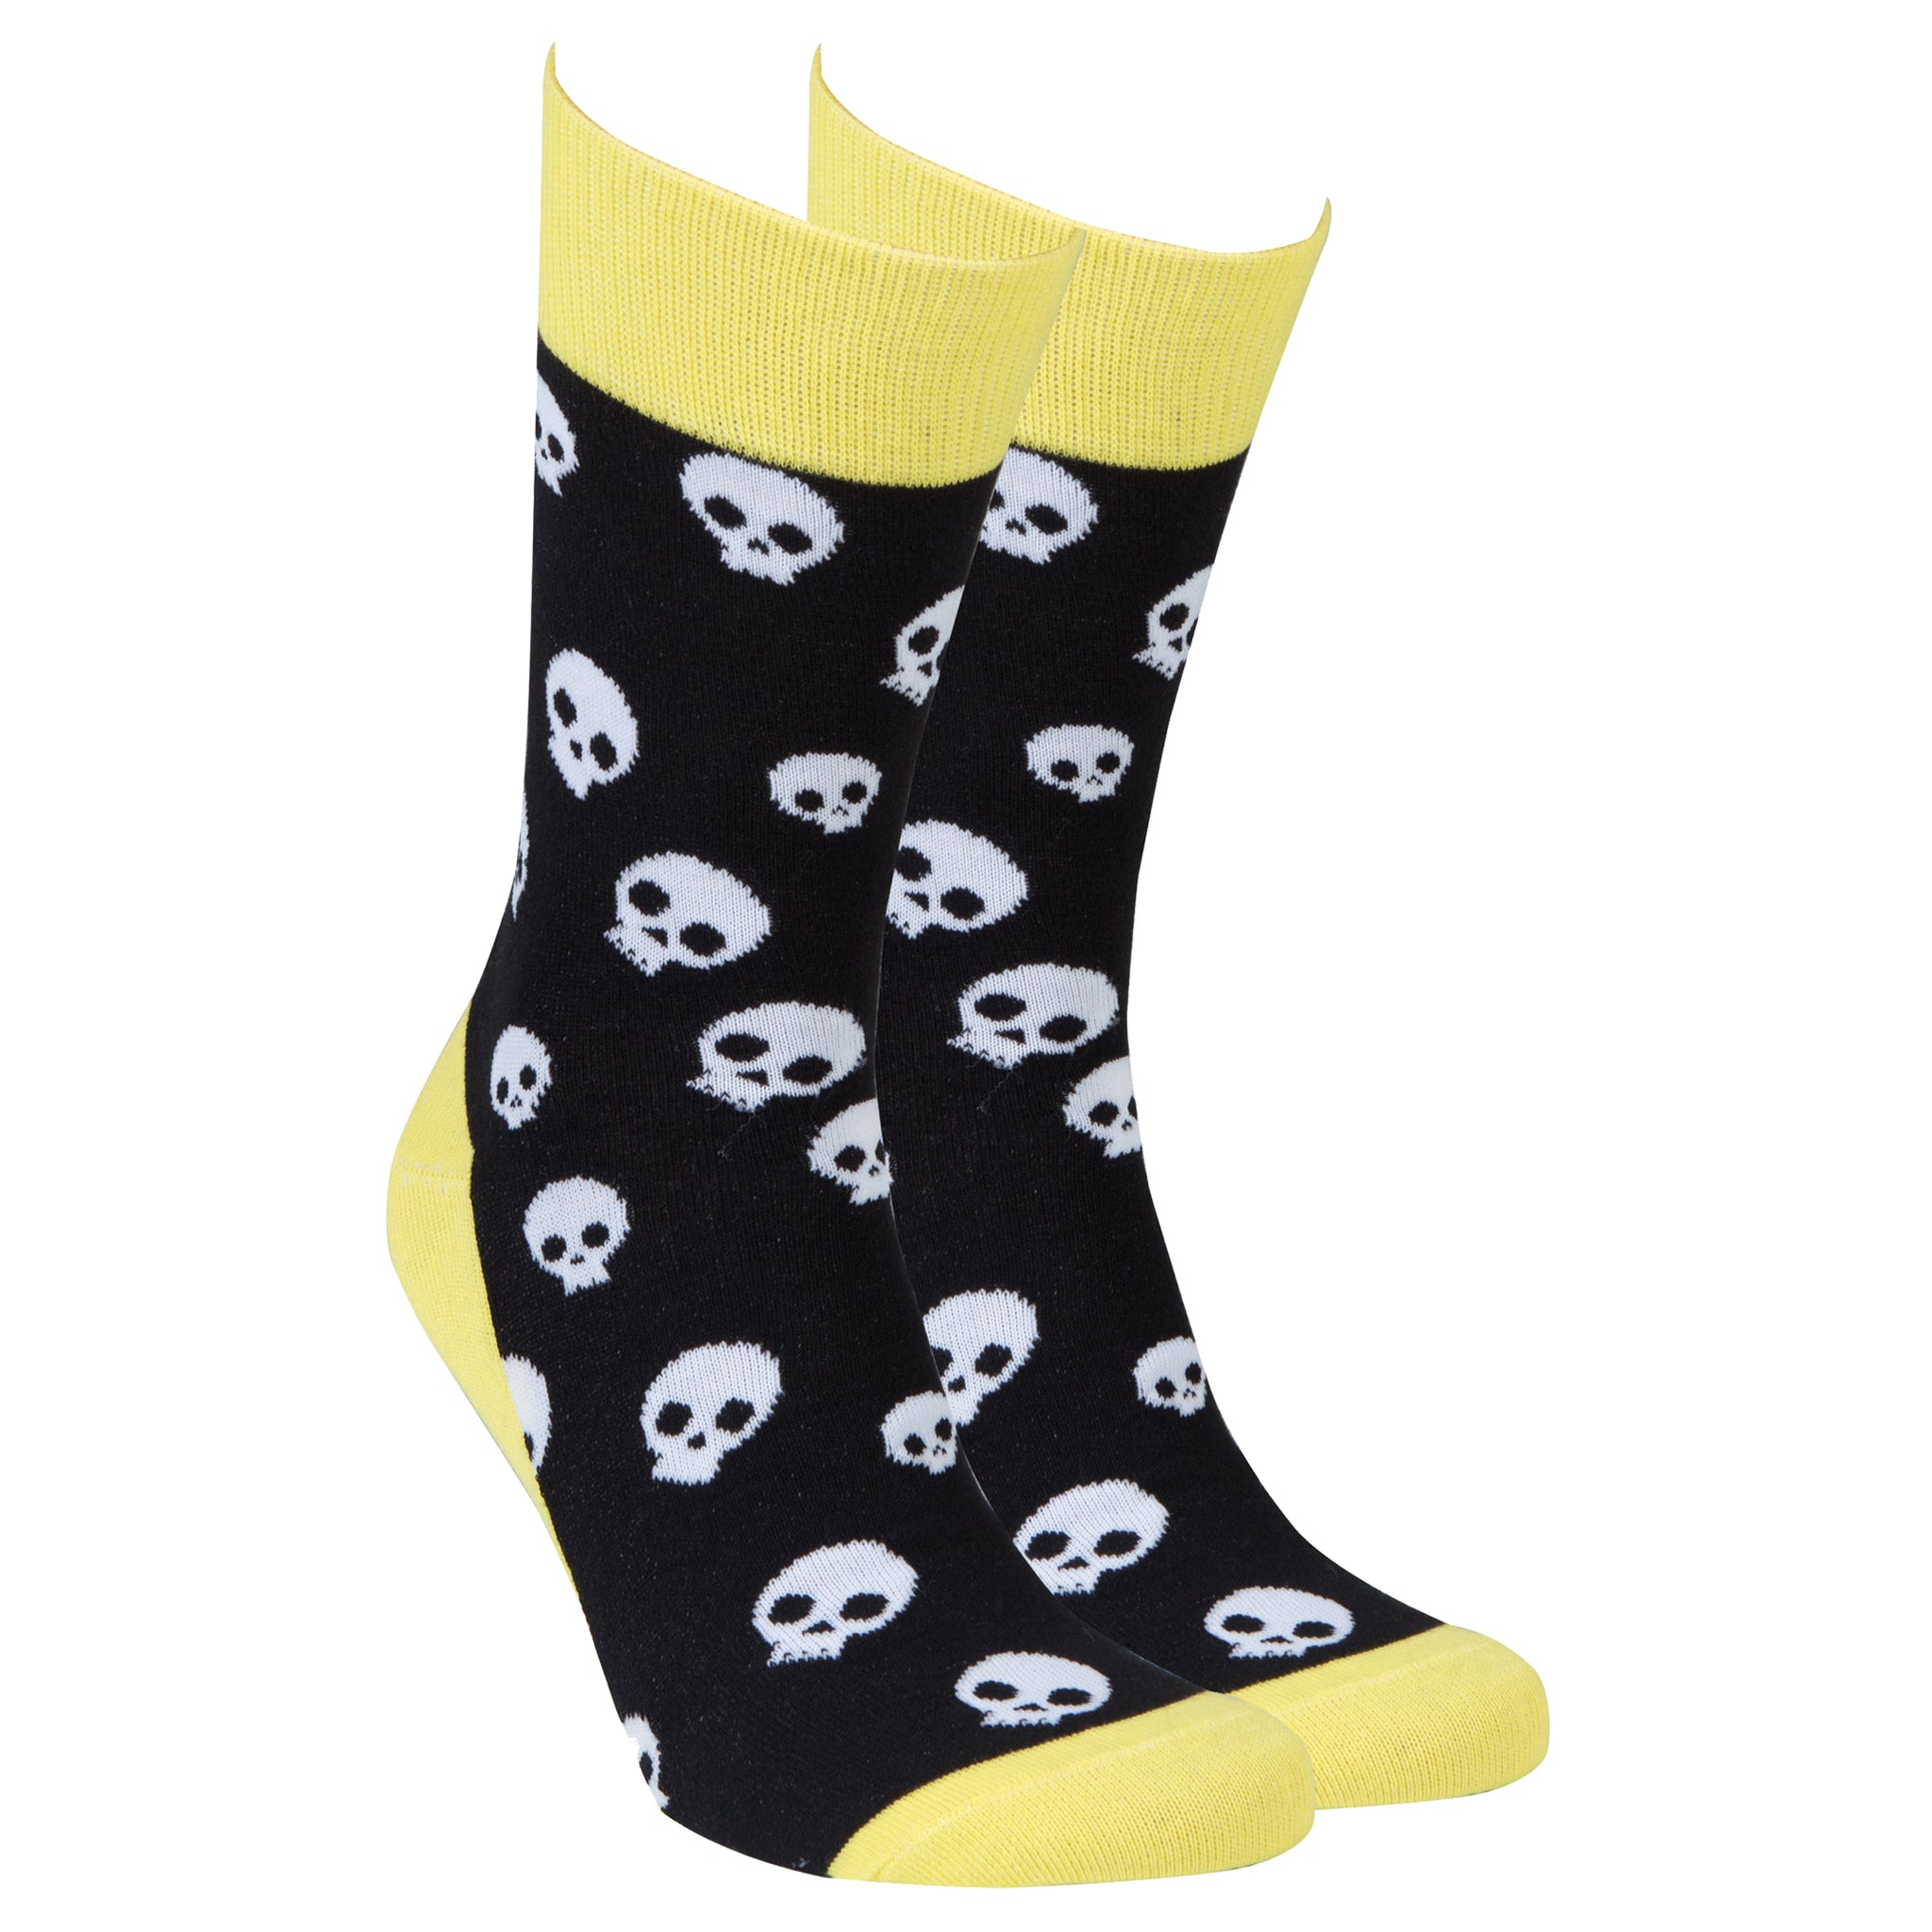 Men's Skulls Socks black and yellow